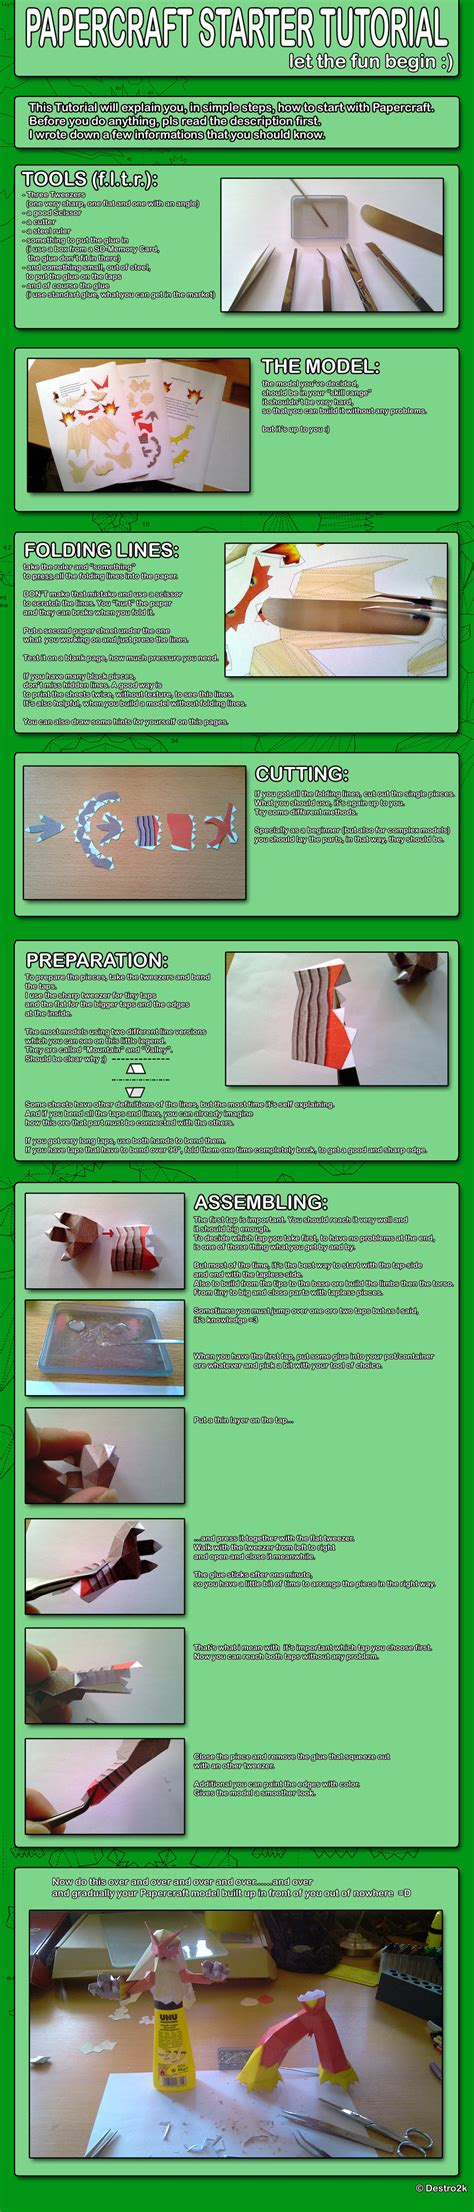 Papercraft Tutorials - papercraft starter tutorial by destro2k on deviantart